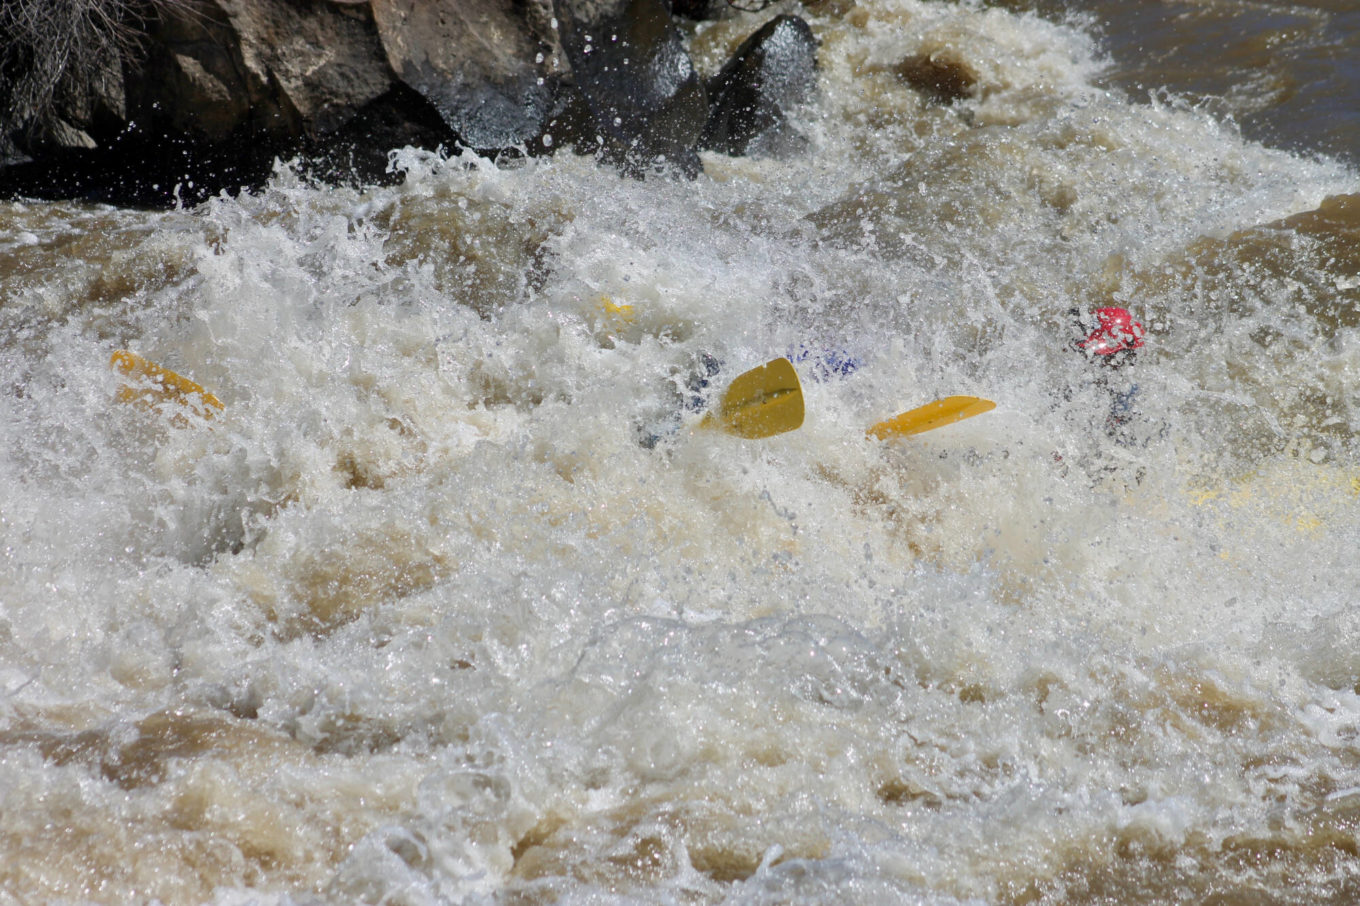 Rio Grande rafters going through the ultimate whitewater